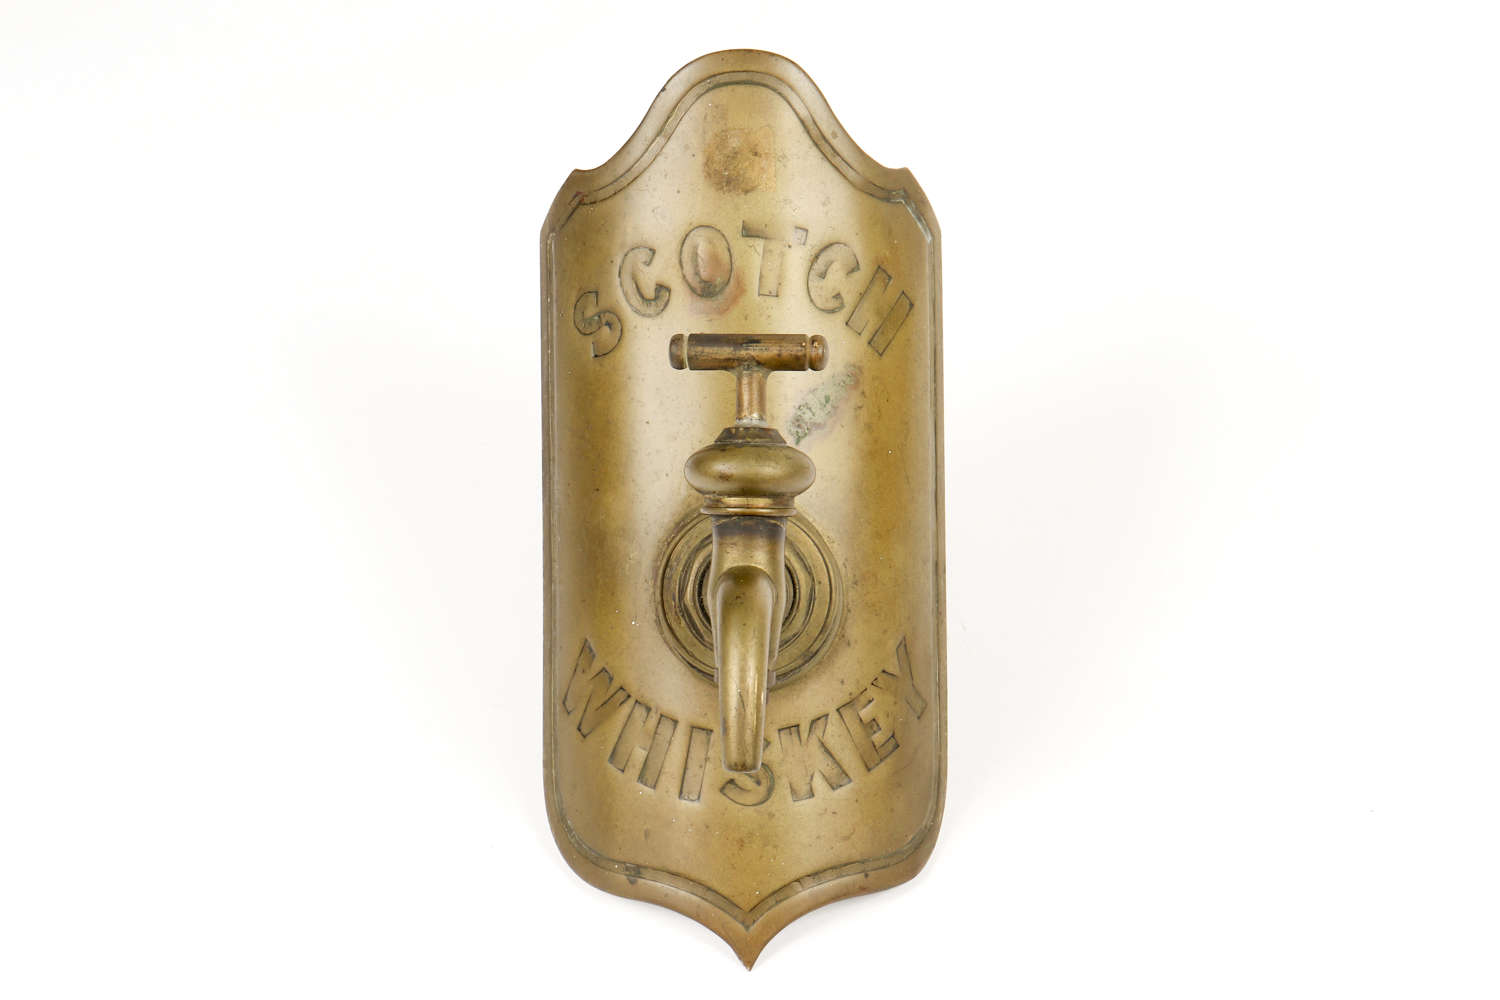 'Scotch Whiskey' brass whiskey barrel tap